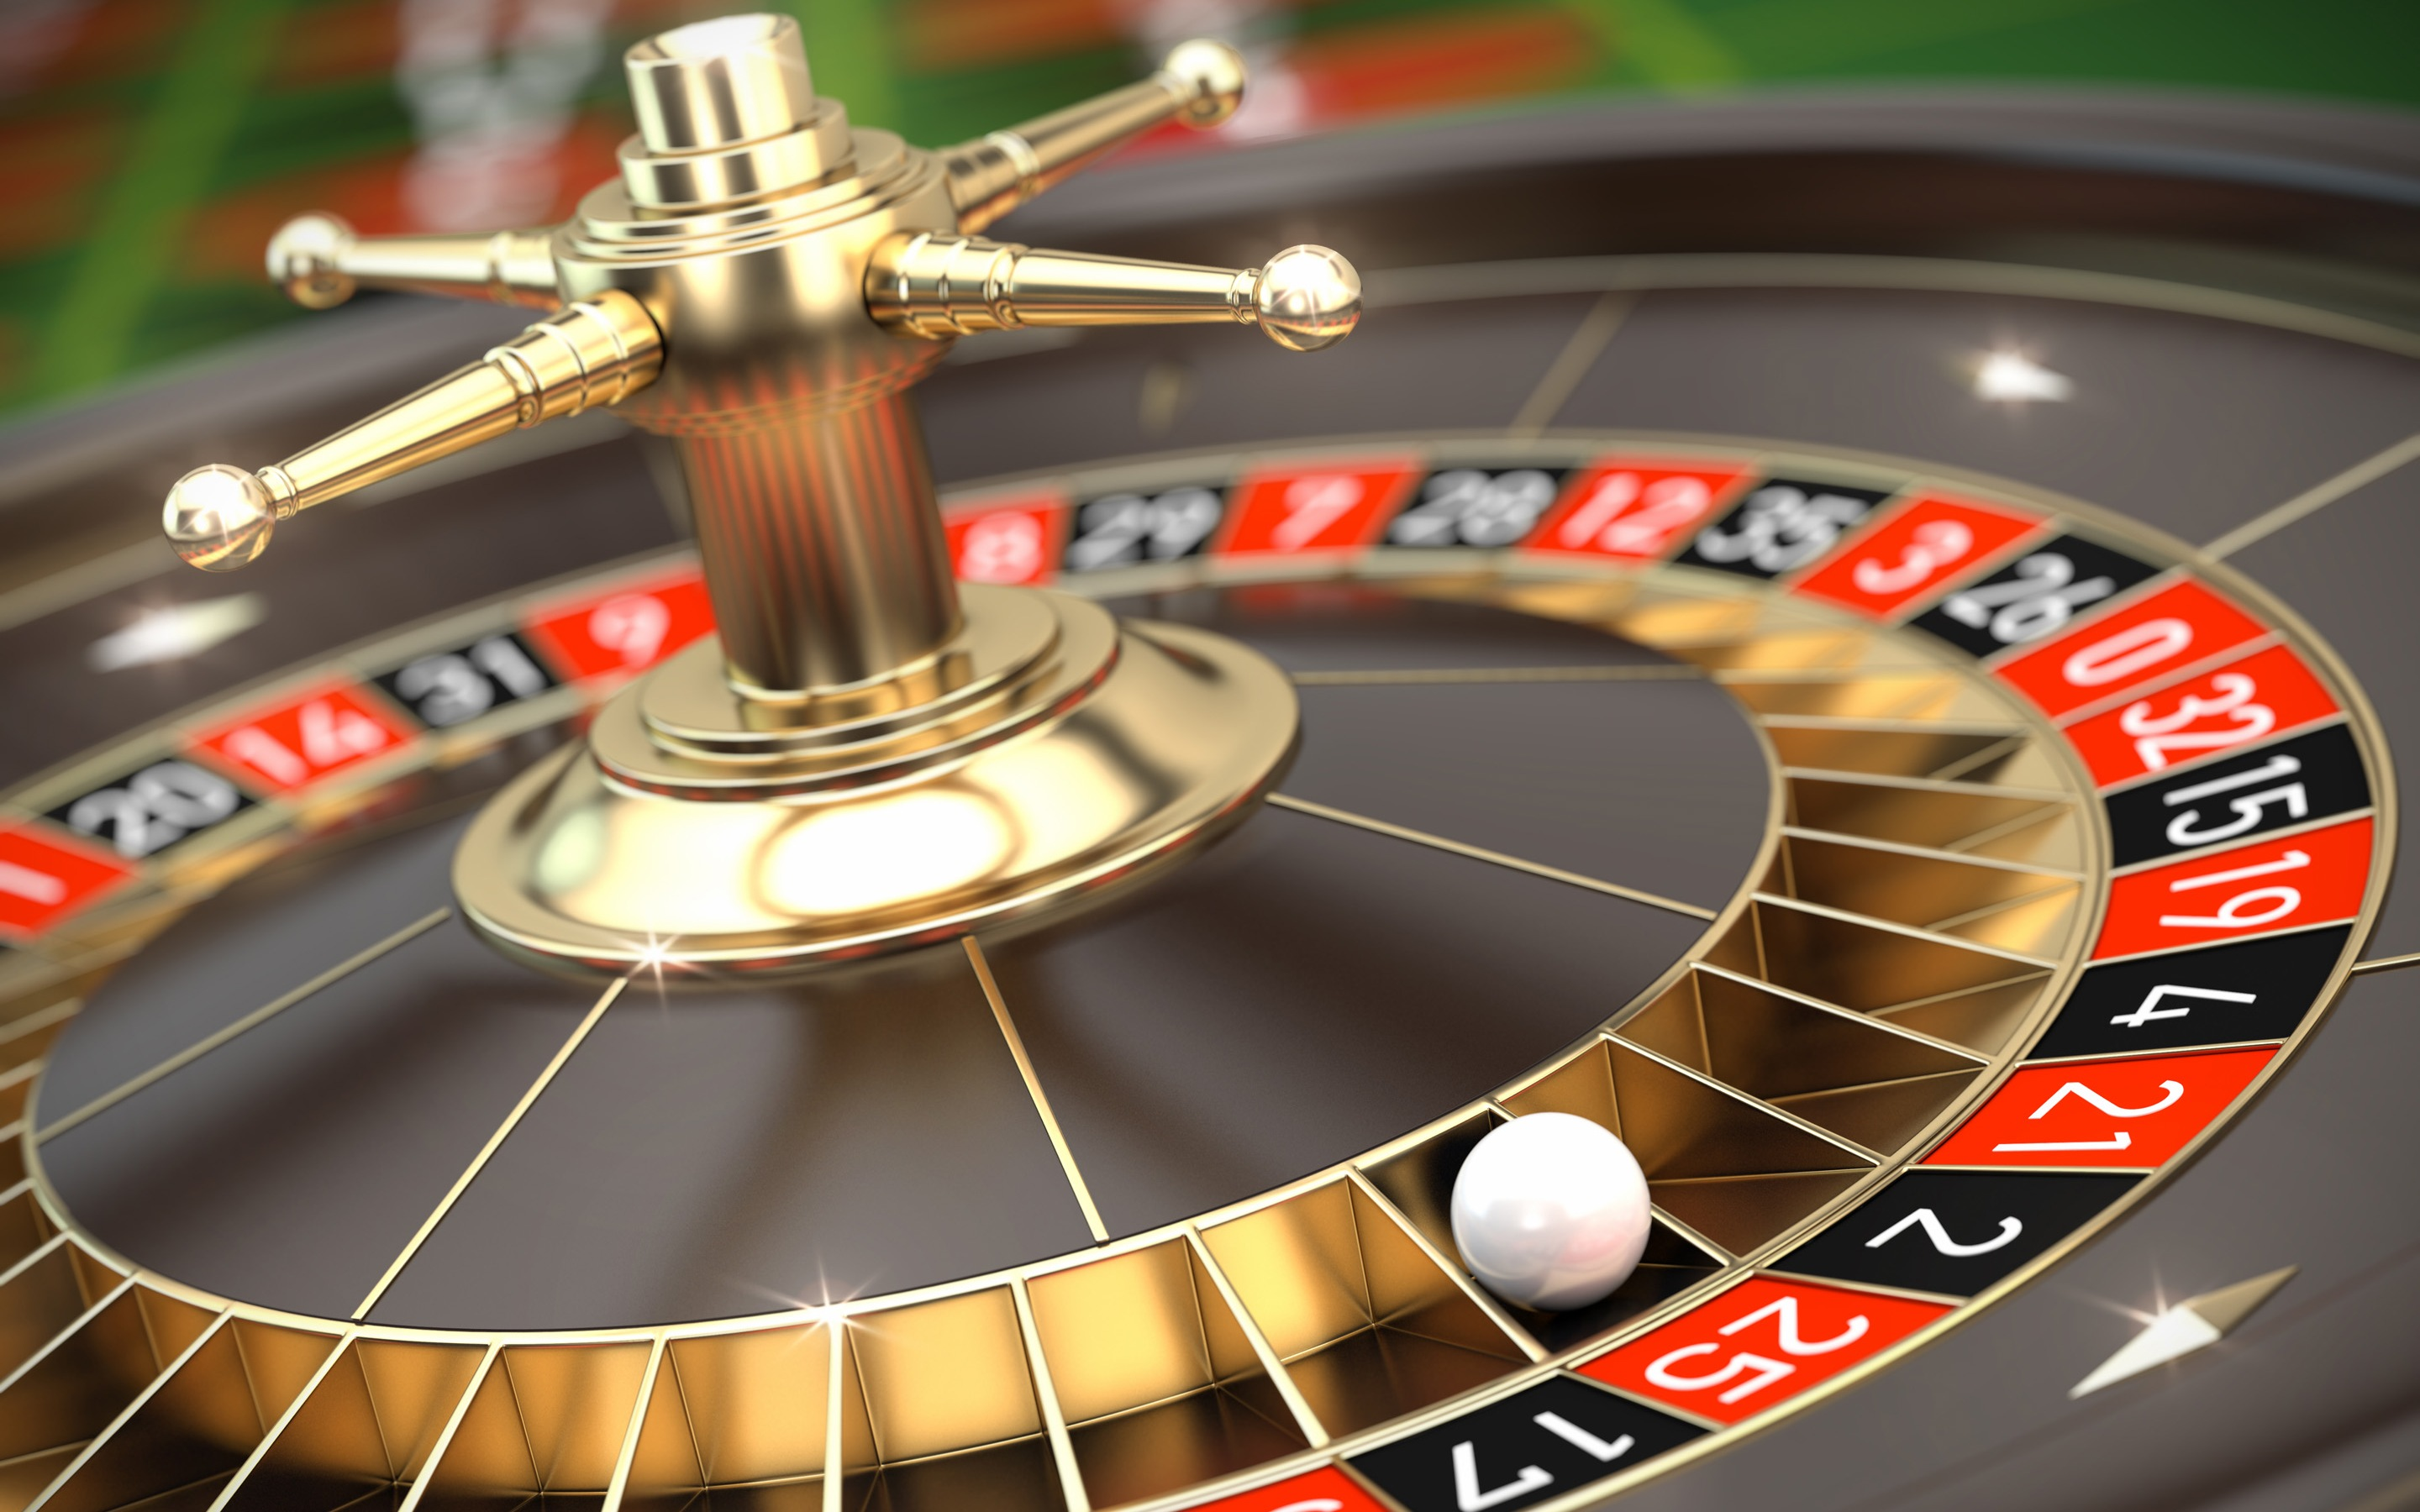 Roulette ubersetzung system of a down